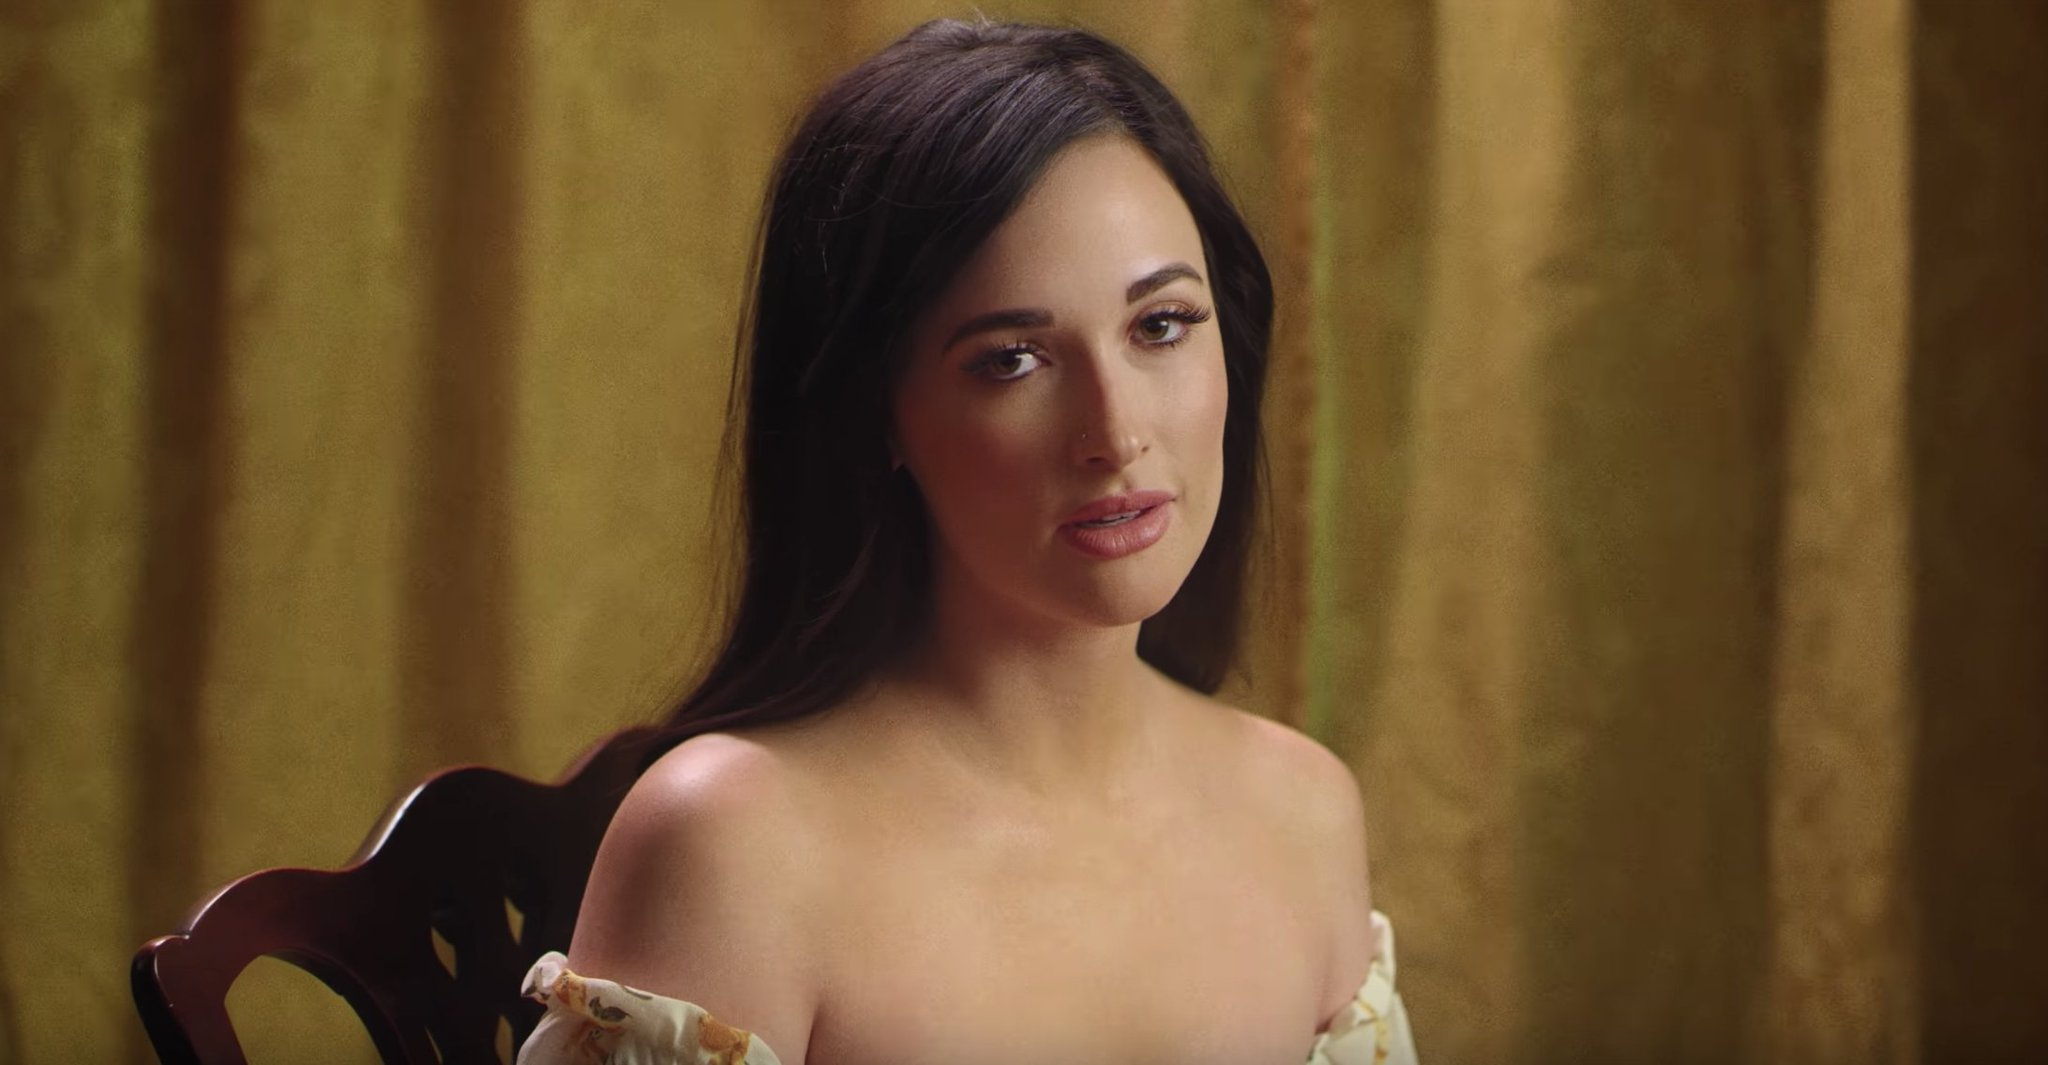 .@KaceyMusgraves has also just released a new music video for 'Mother.' Watch: https://t.co/fQMcfWiRiM https://t.co/ueSrgD1ijK